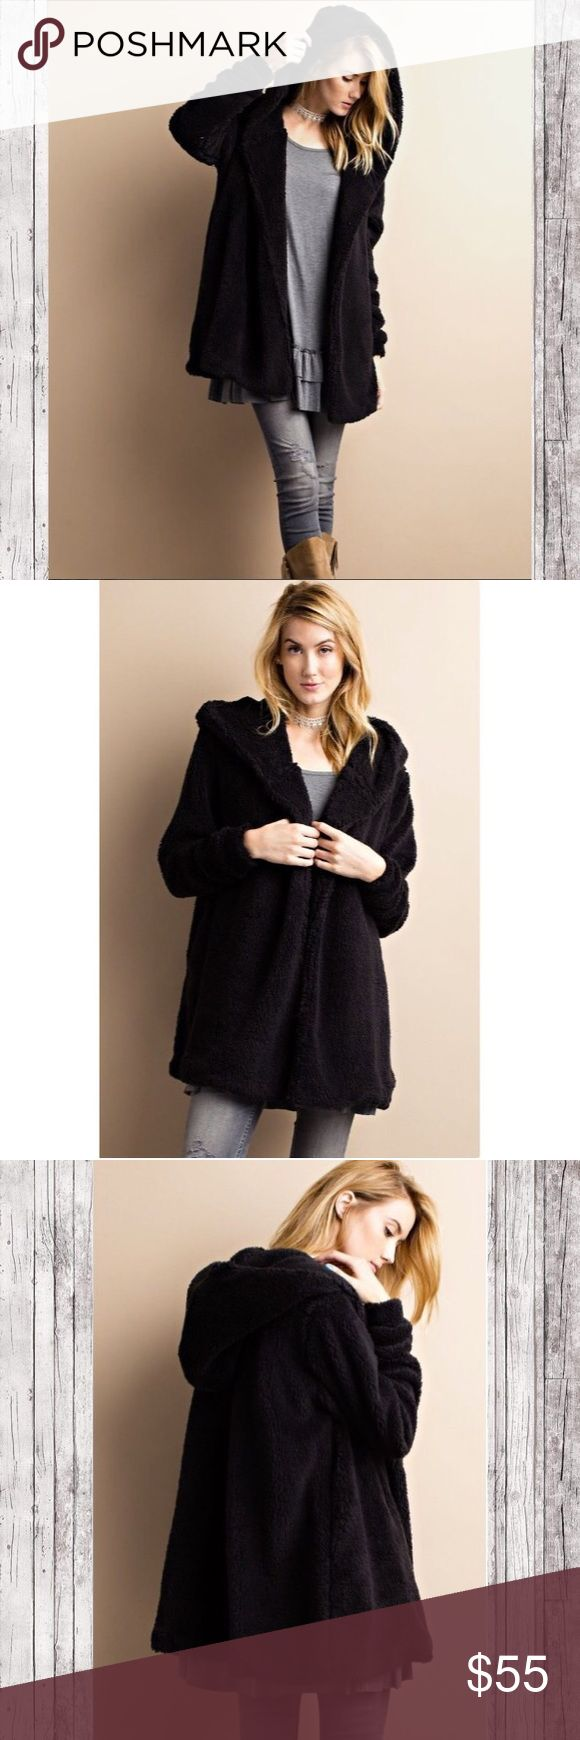 Softest & Most Stylish Coat of this season! You know those blankets that are so soft and thick that you MUST have?  Well this coat is made of that same material!  Imagine being wrapped in the softest coat you've ever felt all winter long!  Not only is it super soft but so cute on and right on trend!  Get yours before they're all gone!  These run slightly oversized. Jackets & Coats